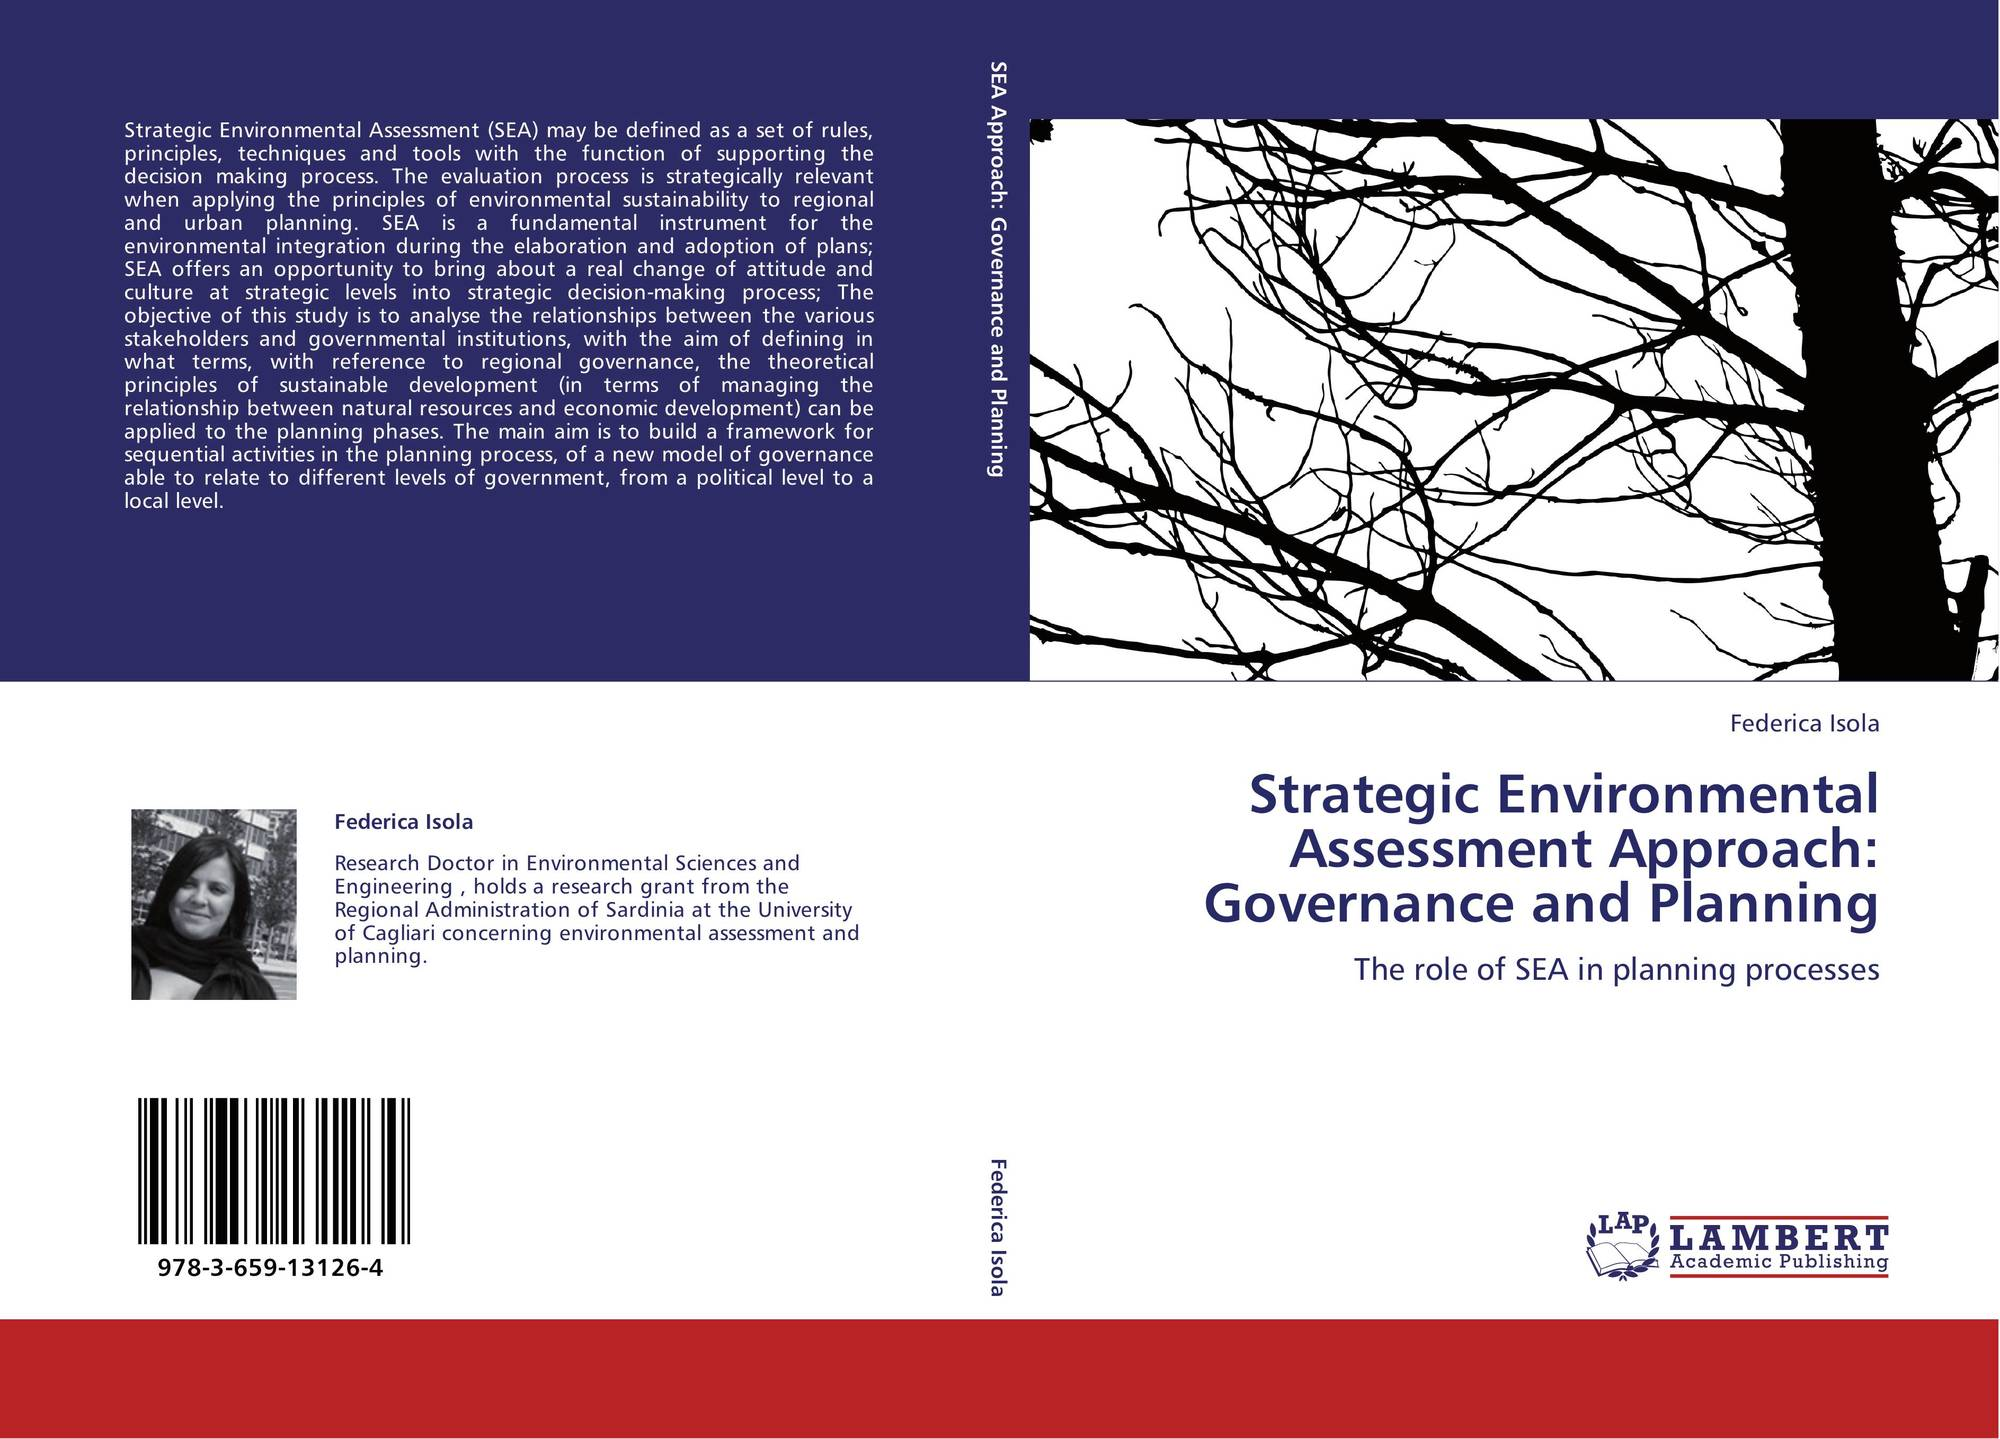 environment strategy governance Eggs strategy for sustainable development for consumer goods companies (not more than two pages) identify which eggs issues are most critical in the consumer goods industry 1 responsible resource management 2 environmental supply chain issues 3 anti-competitive behavior or price fixing 4.